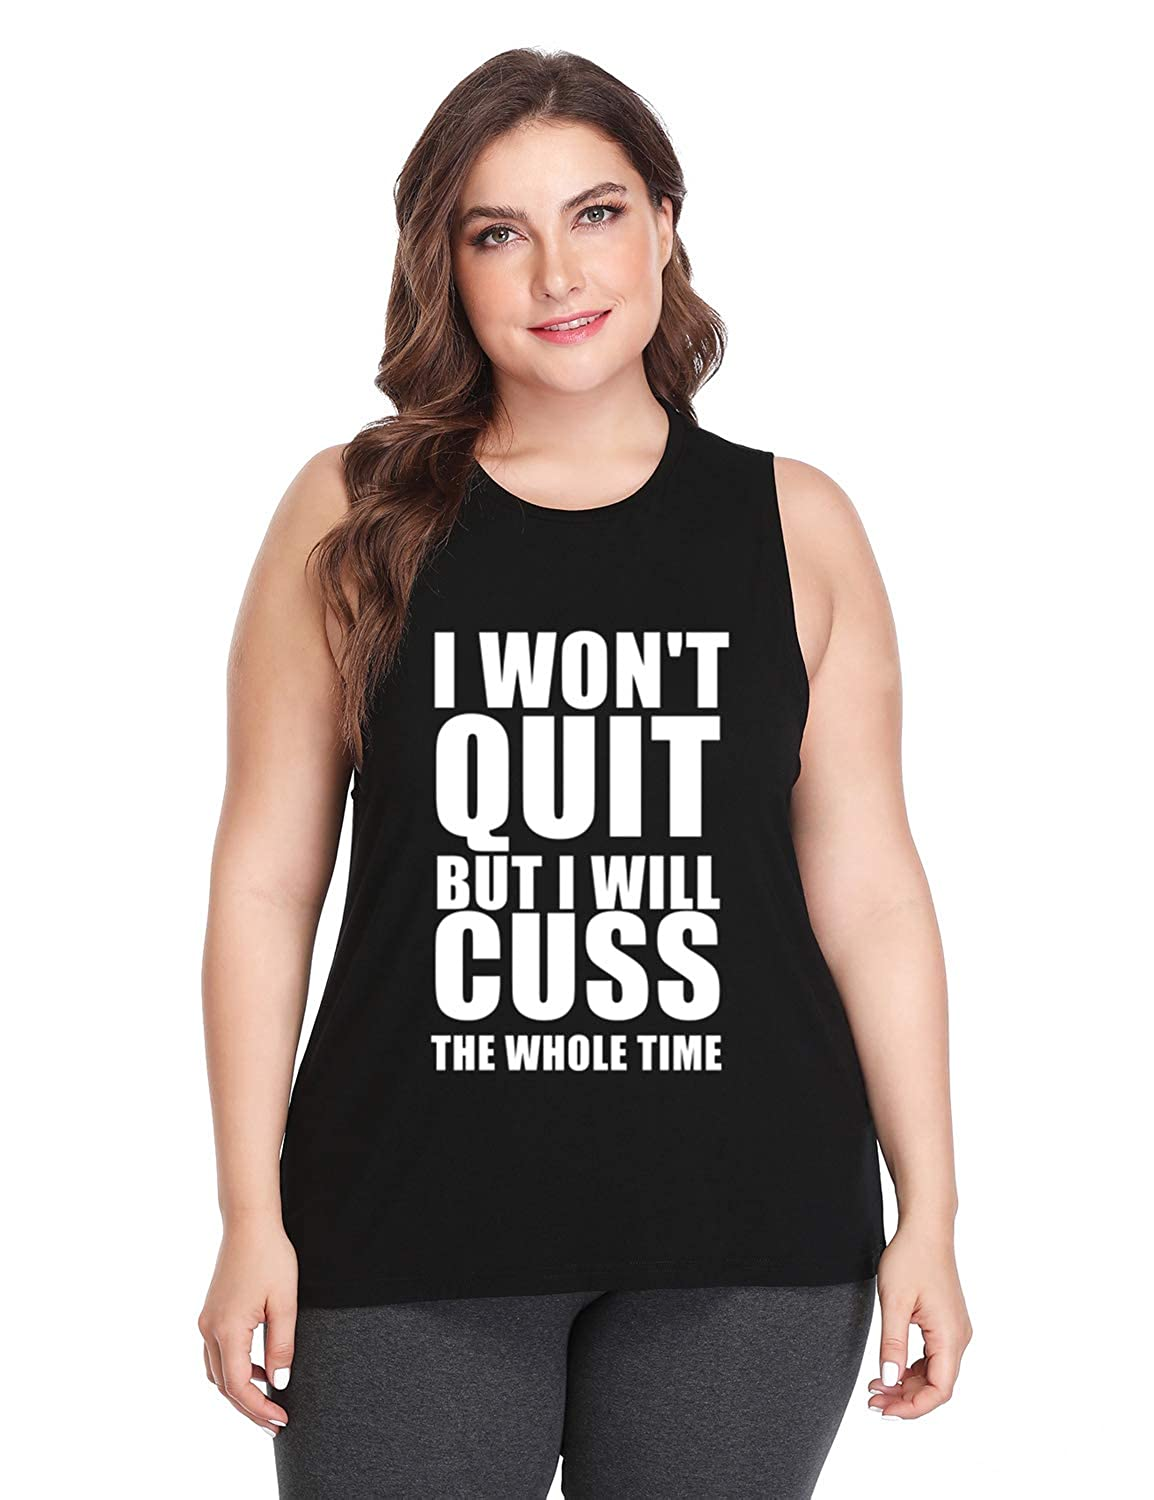 ec73c972197e6 Fannoo Plus Size Workout Tank Tops for Women-I Won't Quit Womens Funny  Saying Fitness Gym Racerback Sleeveless Shirts